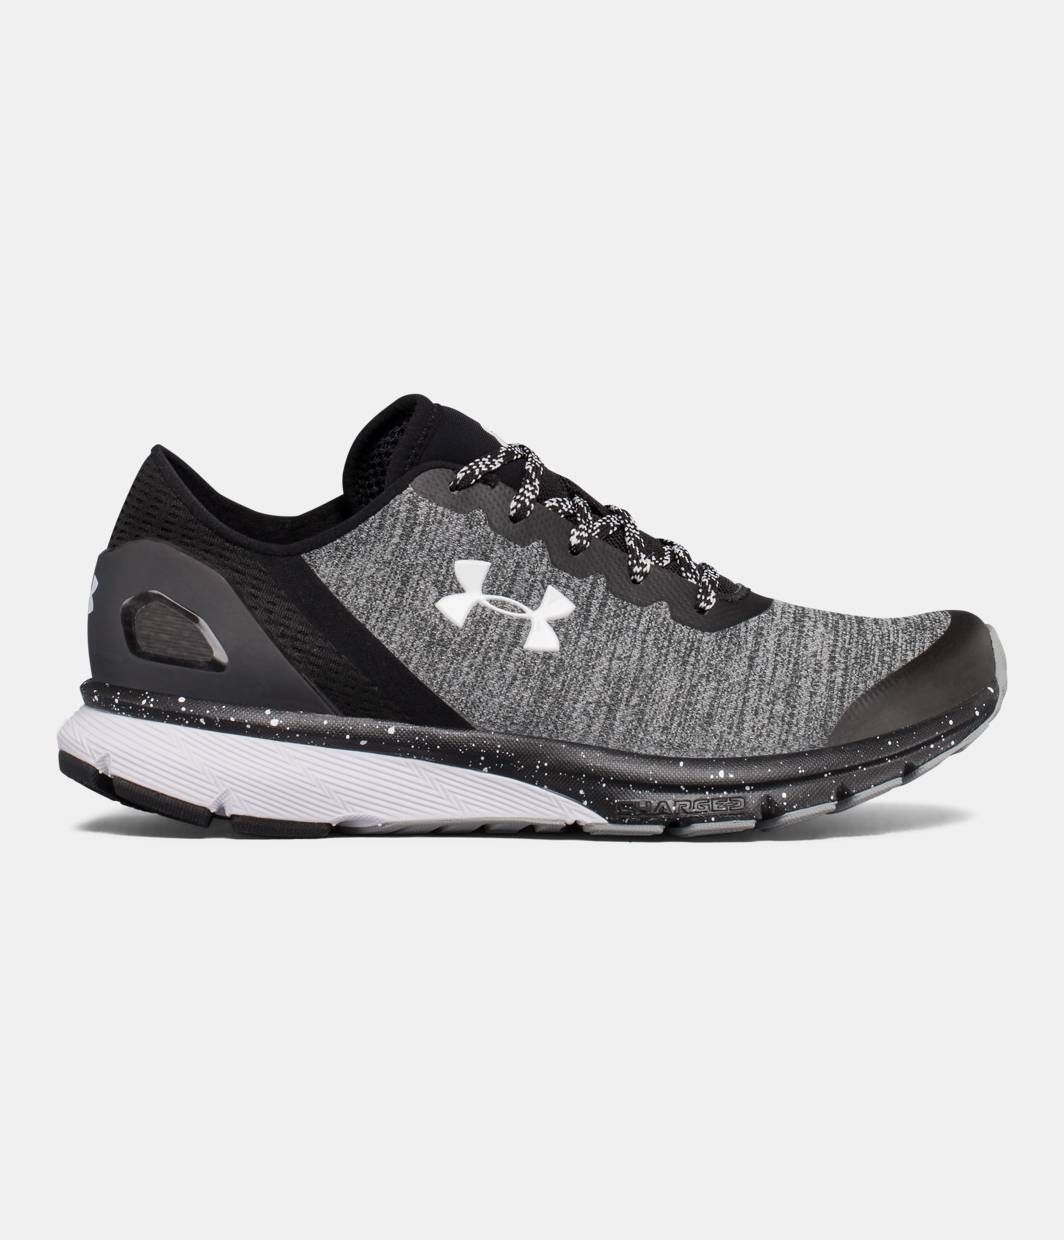 free shipping wholesale price Under Armour Charged Escape ... Men's Running Shoes cheap visit GIRqx